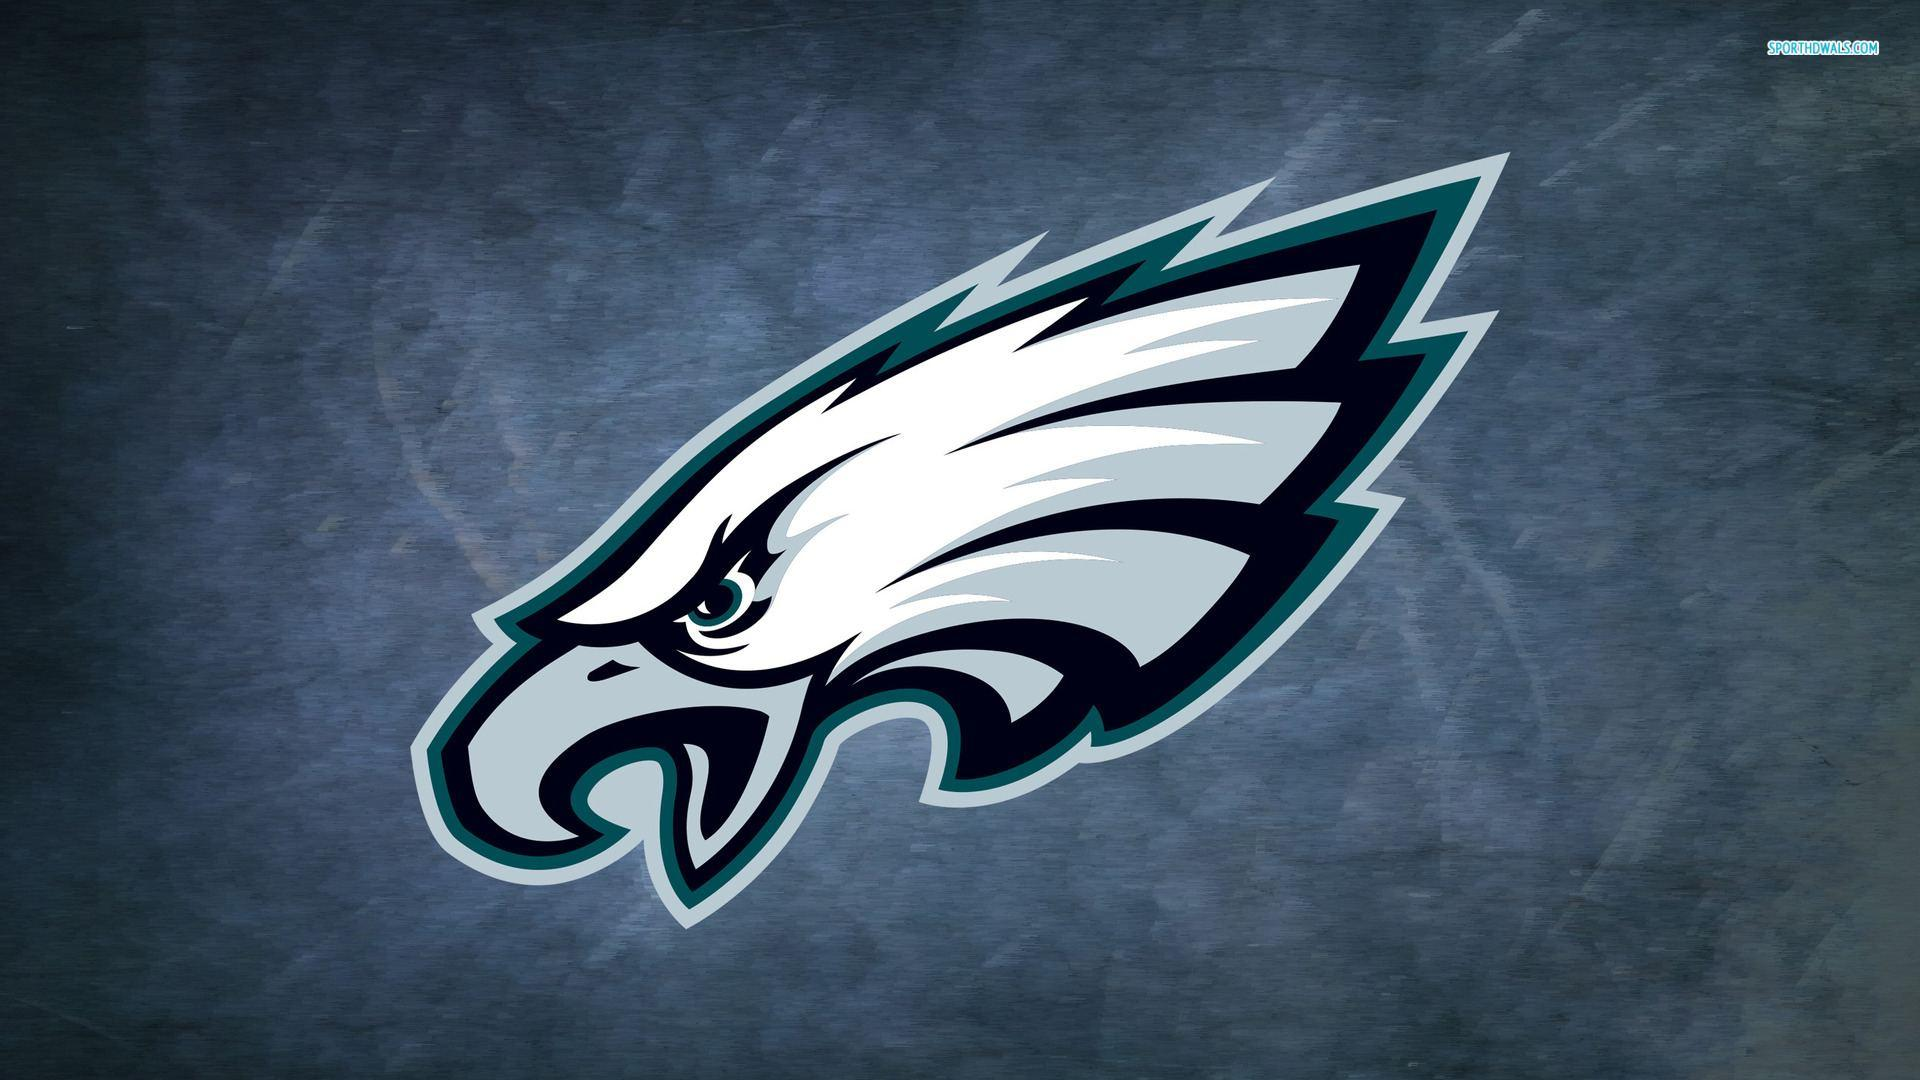 Philadelphia Eagles wallpapers hd free download